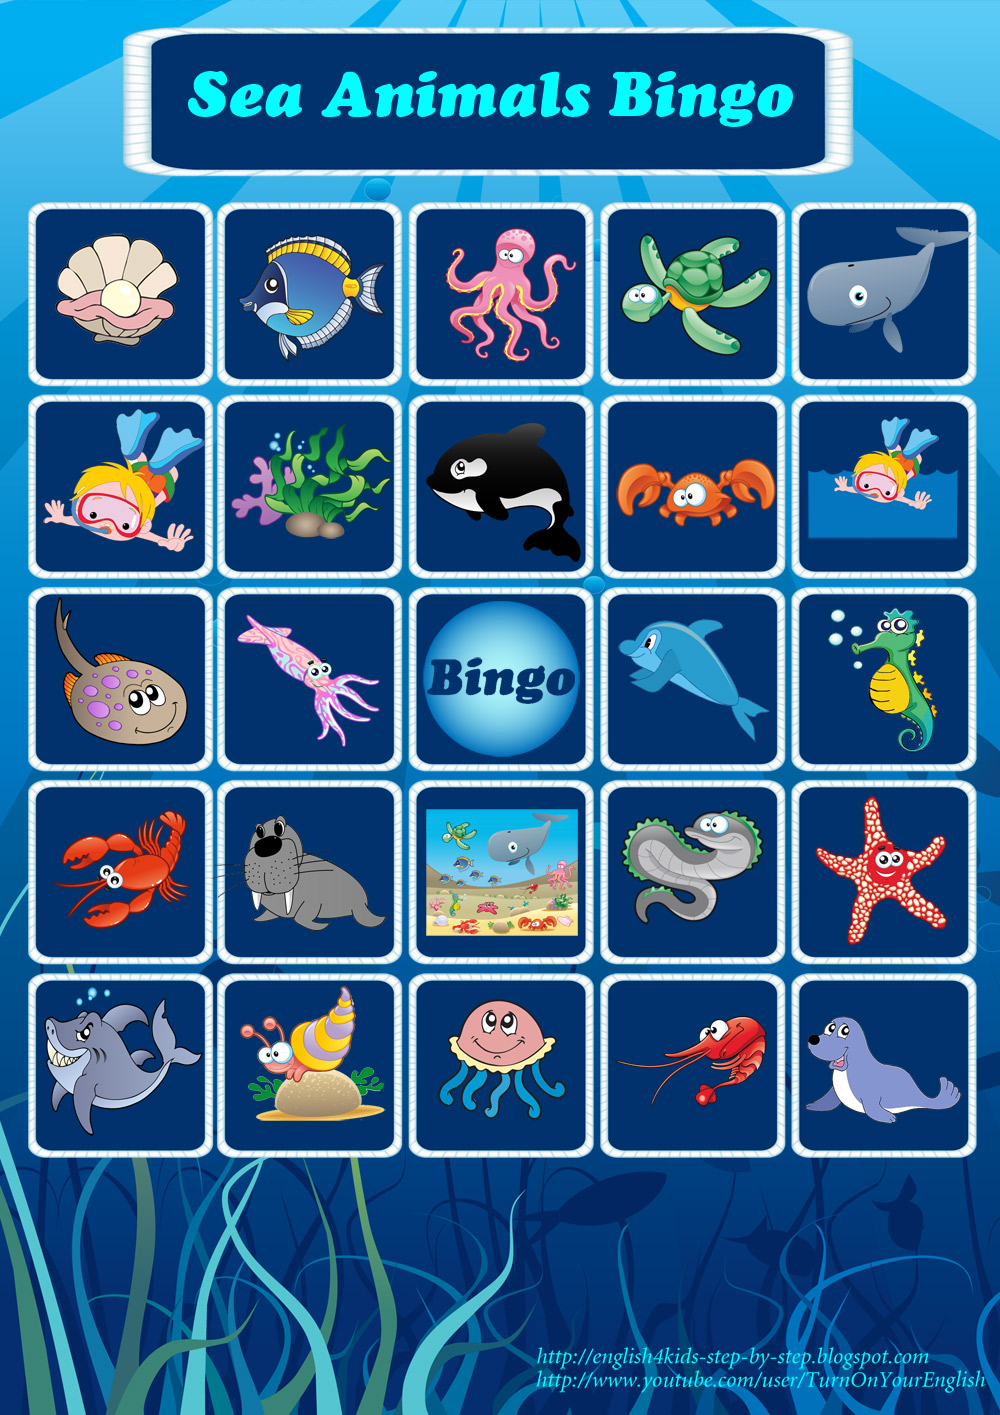 Number bingo! – a fun way to practise learning numbers